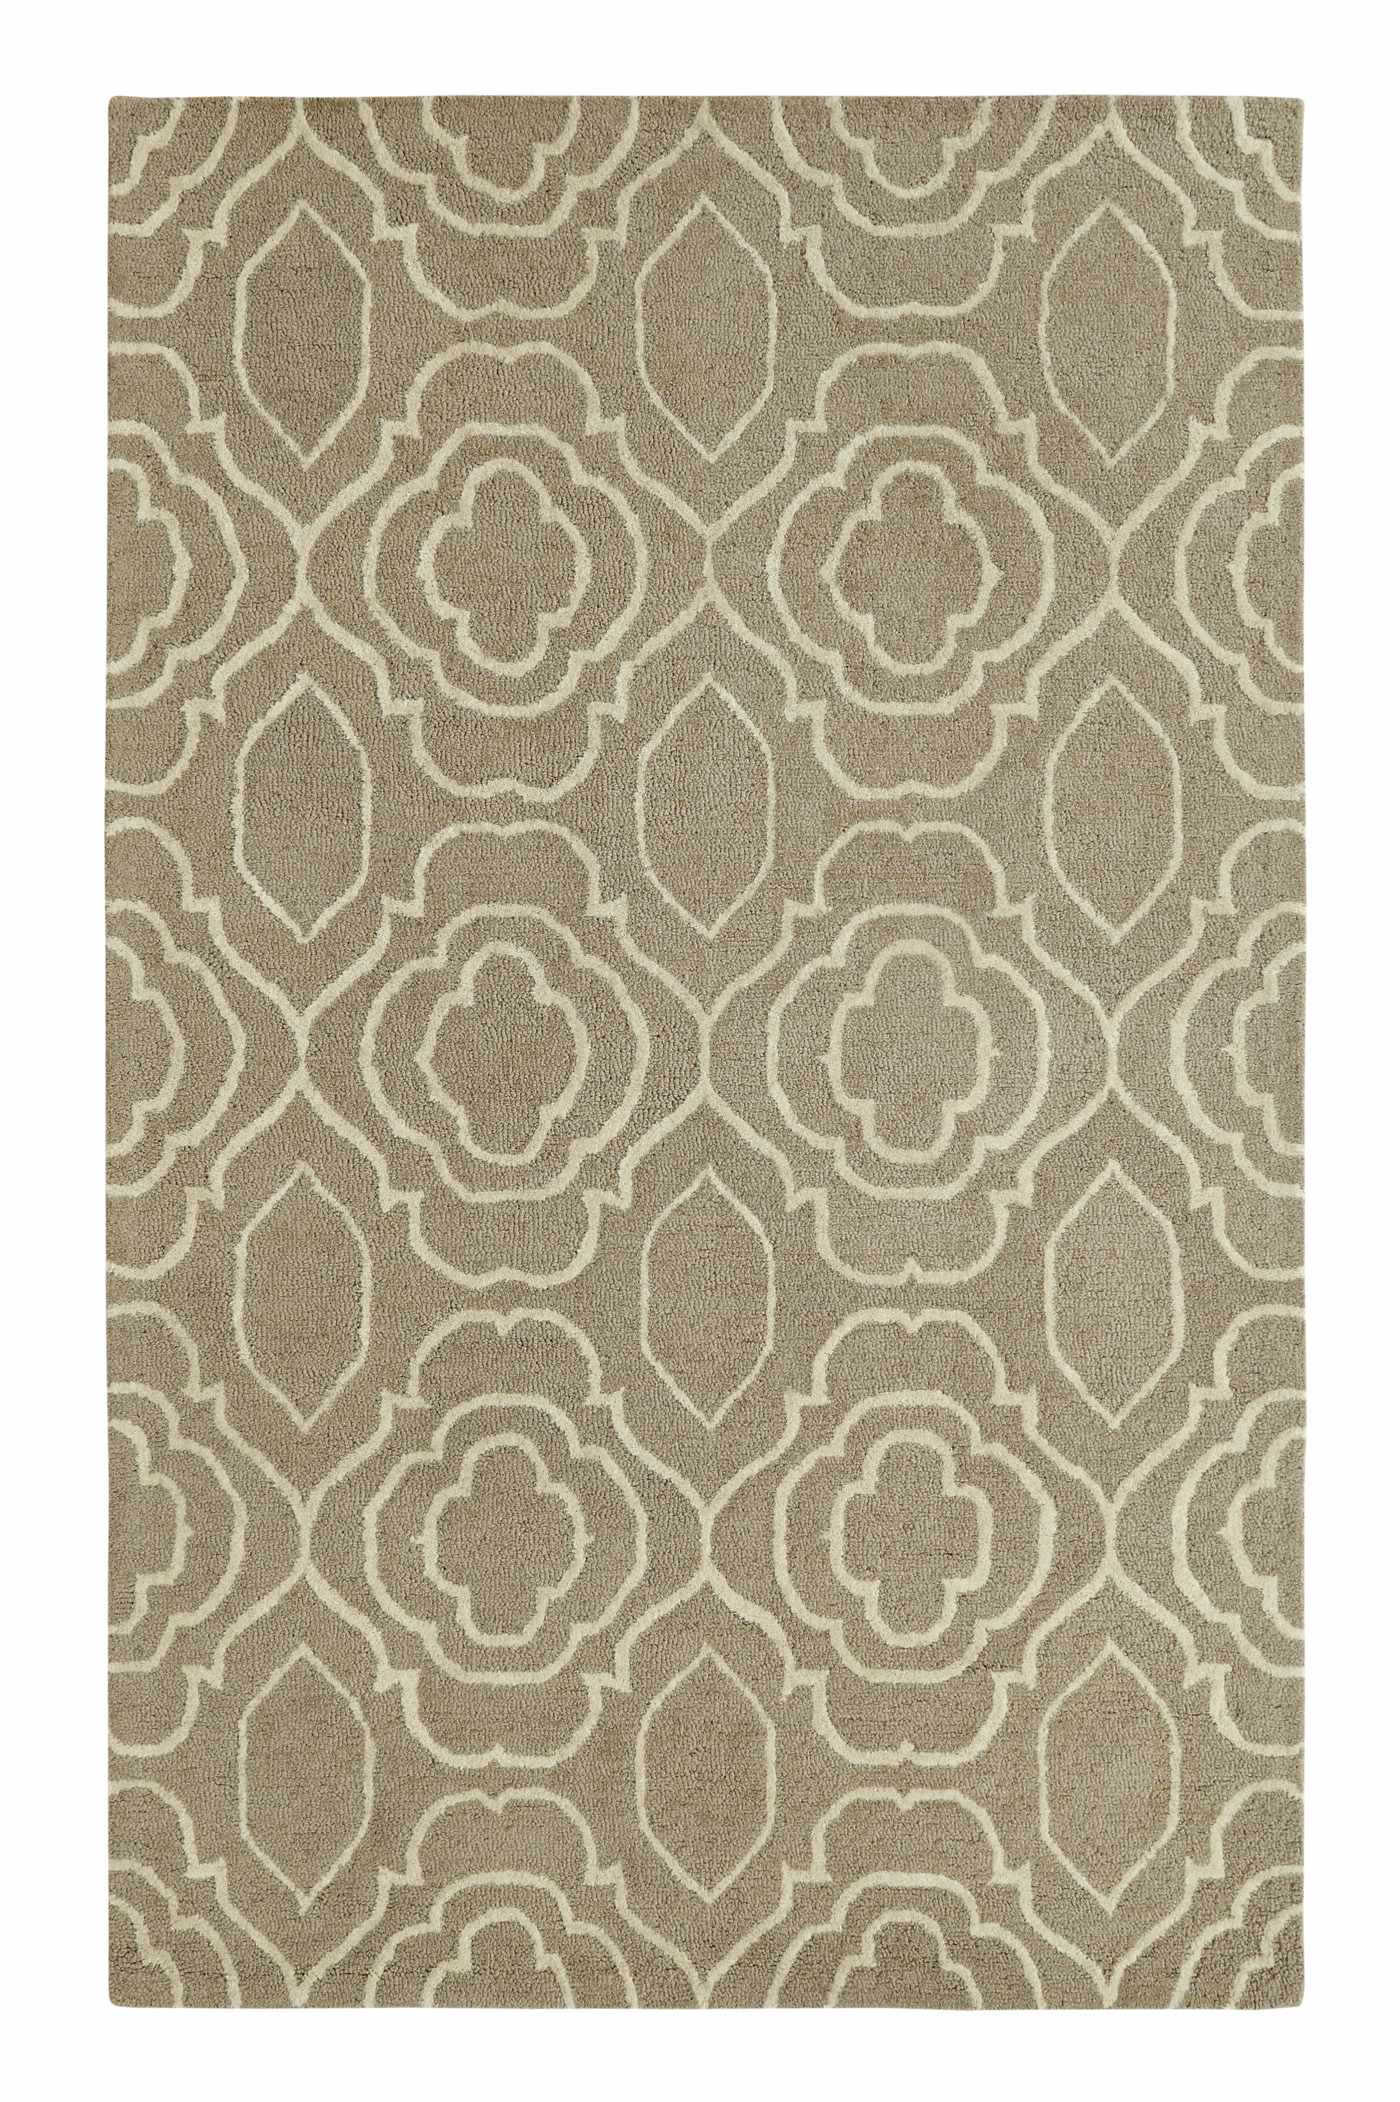 Dynamic Rugs Palace Medallion/damask Silver/ivory 5551 Area Rug